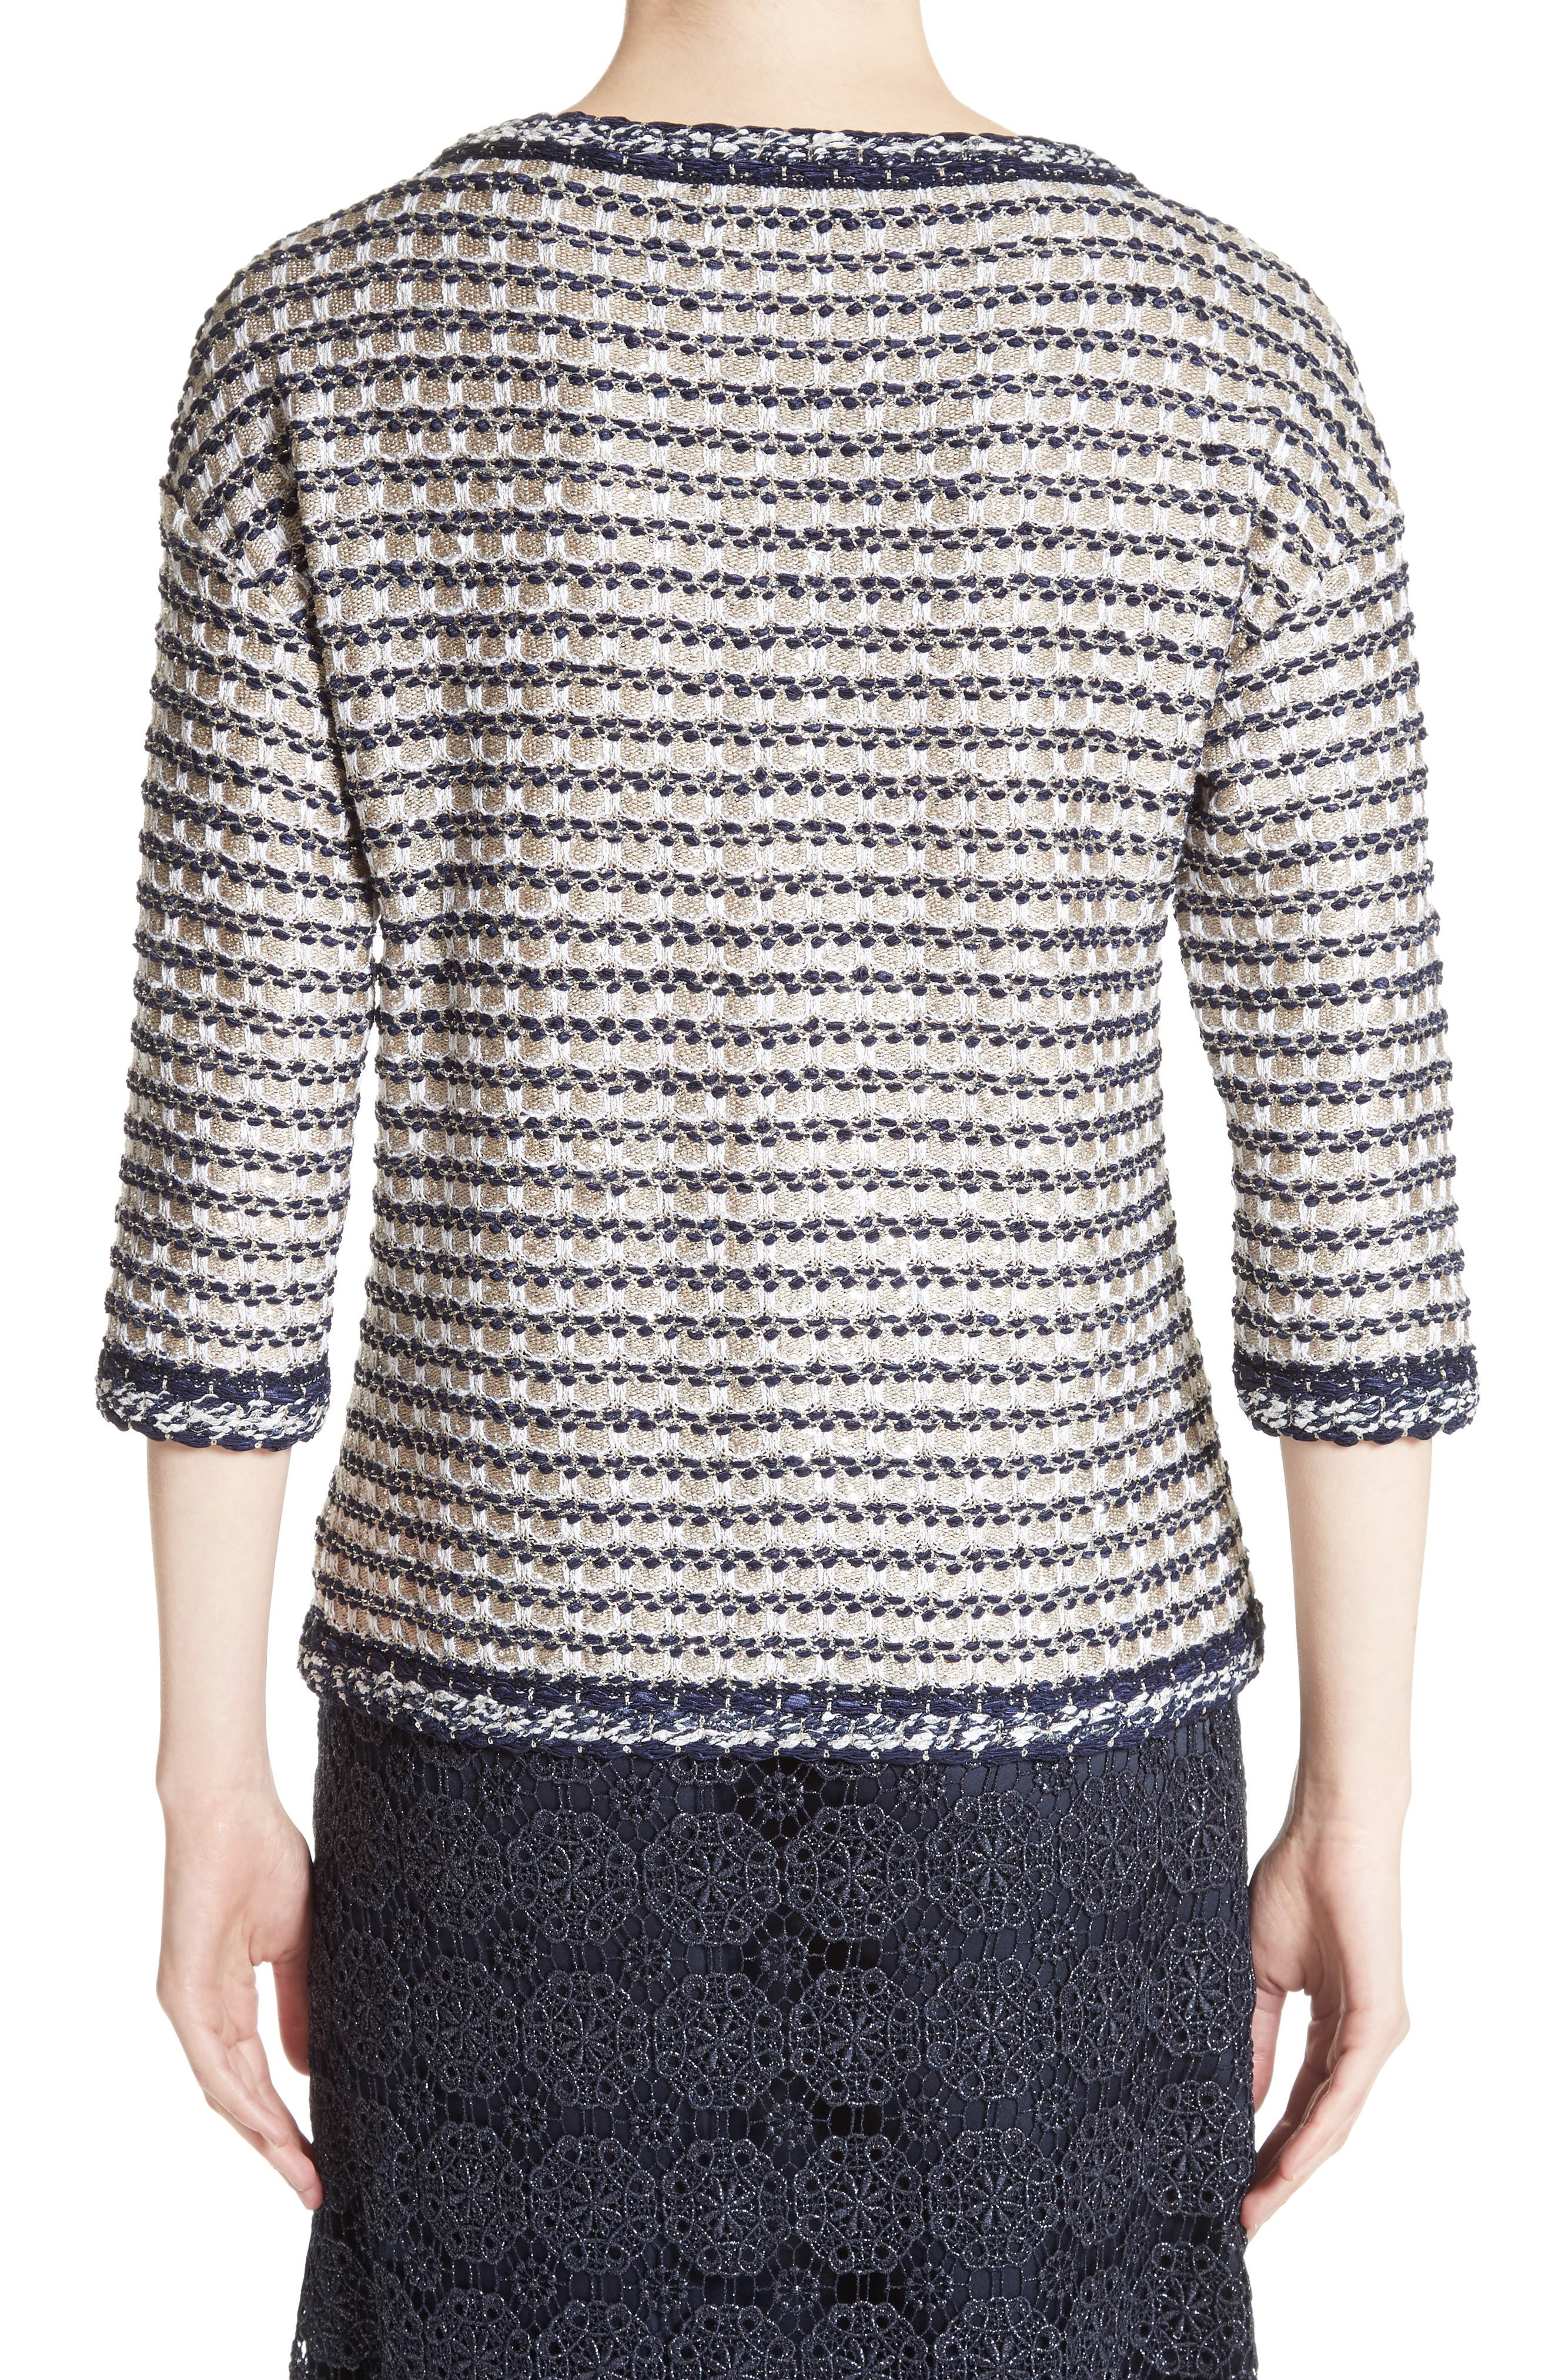 Vany Tweed Knit Top,                             Alternate thumbnail 2, color,                             040